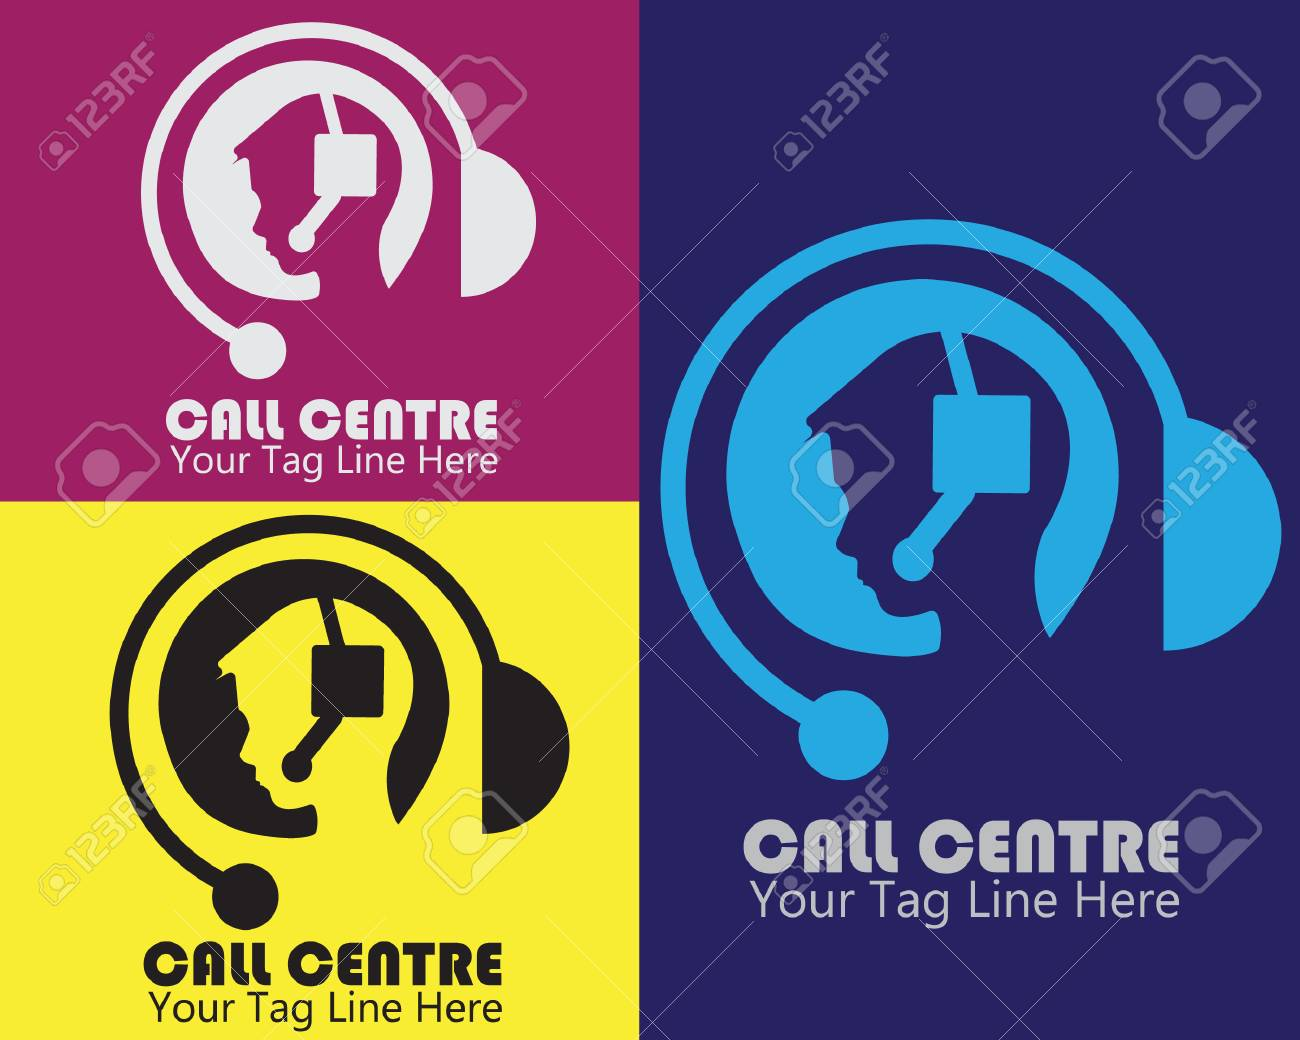 call center operator any color material minimal icon or logo royalty free cliparts vectors and stock illustration image 117629288 call center operator any color material minimal icon or logo